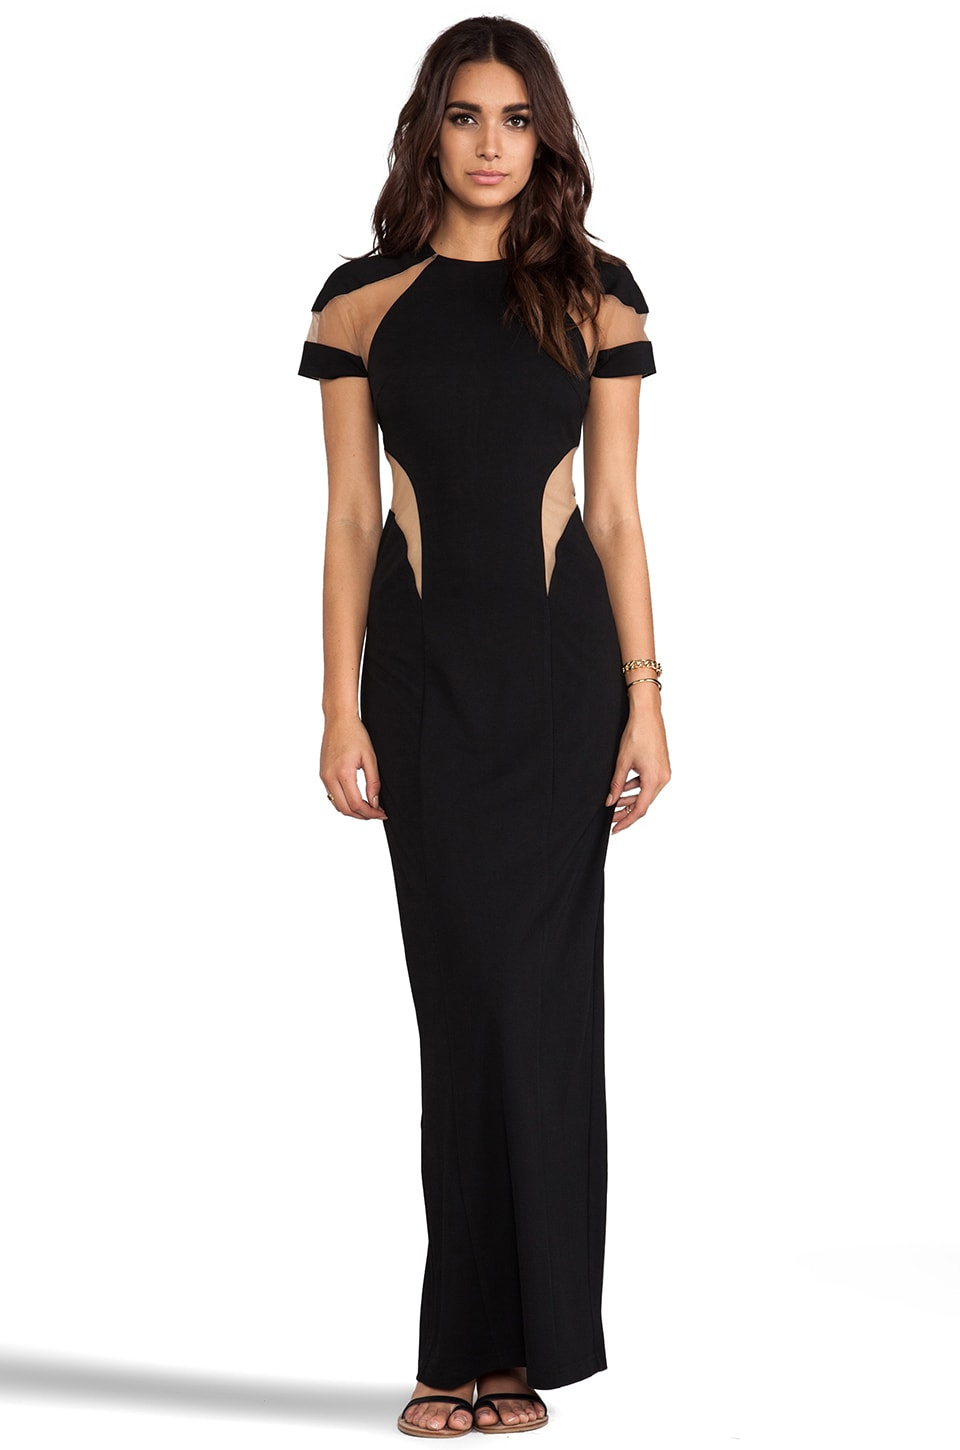 Lumier Impossible Promise Maxi Dress in Black